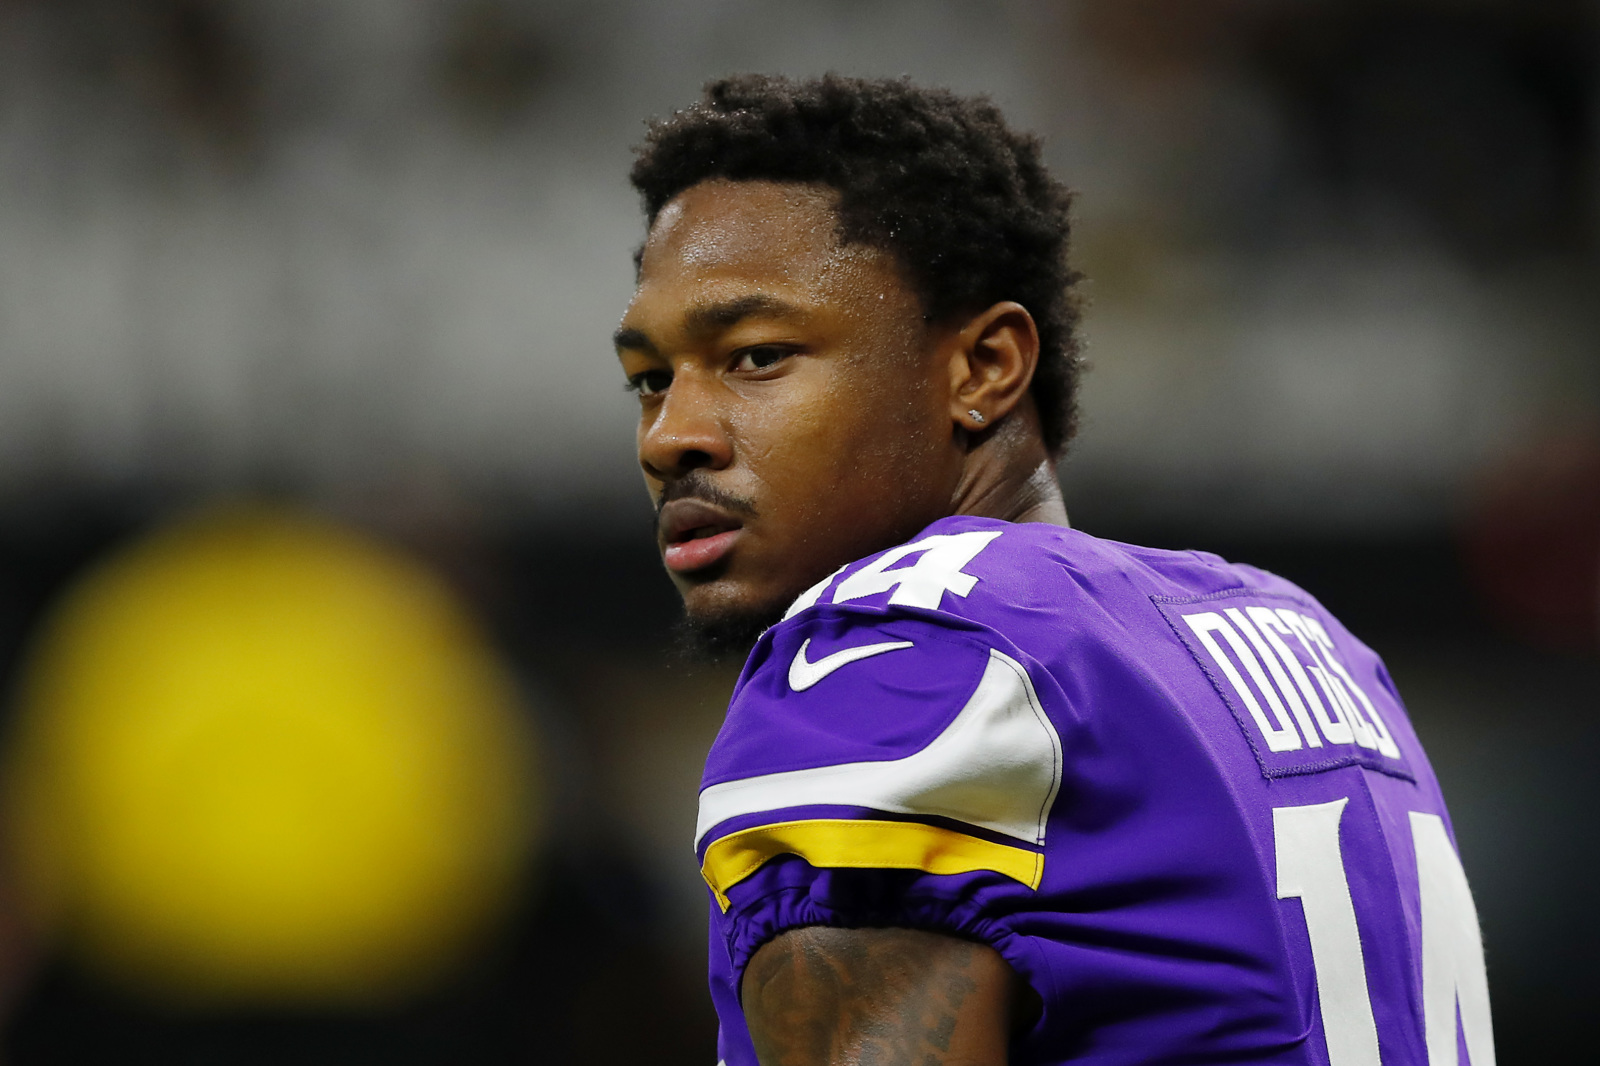 Seahawks should trade for Stefon Diggs and Everson Griffen